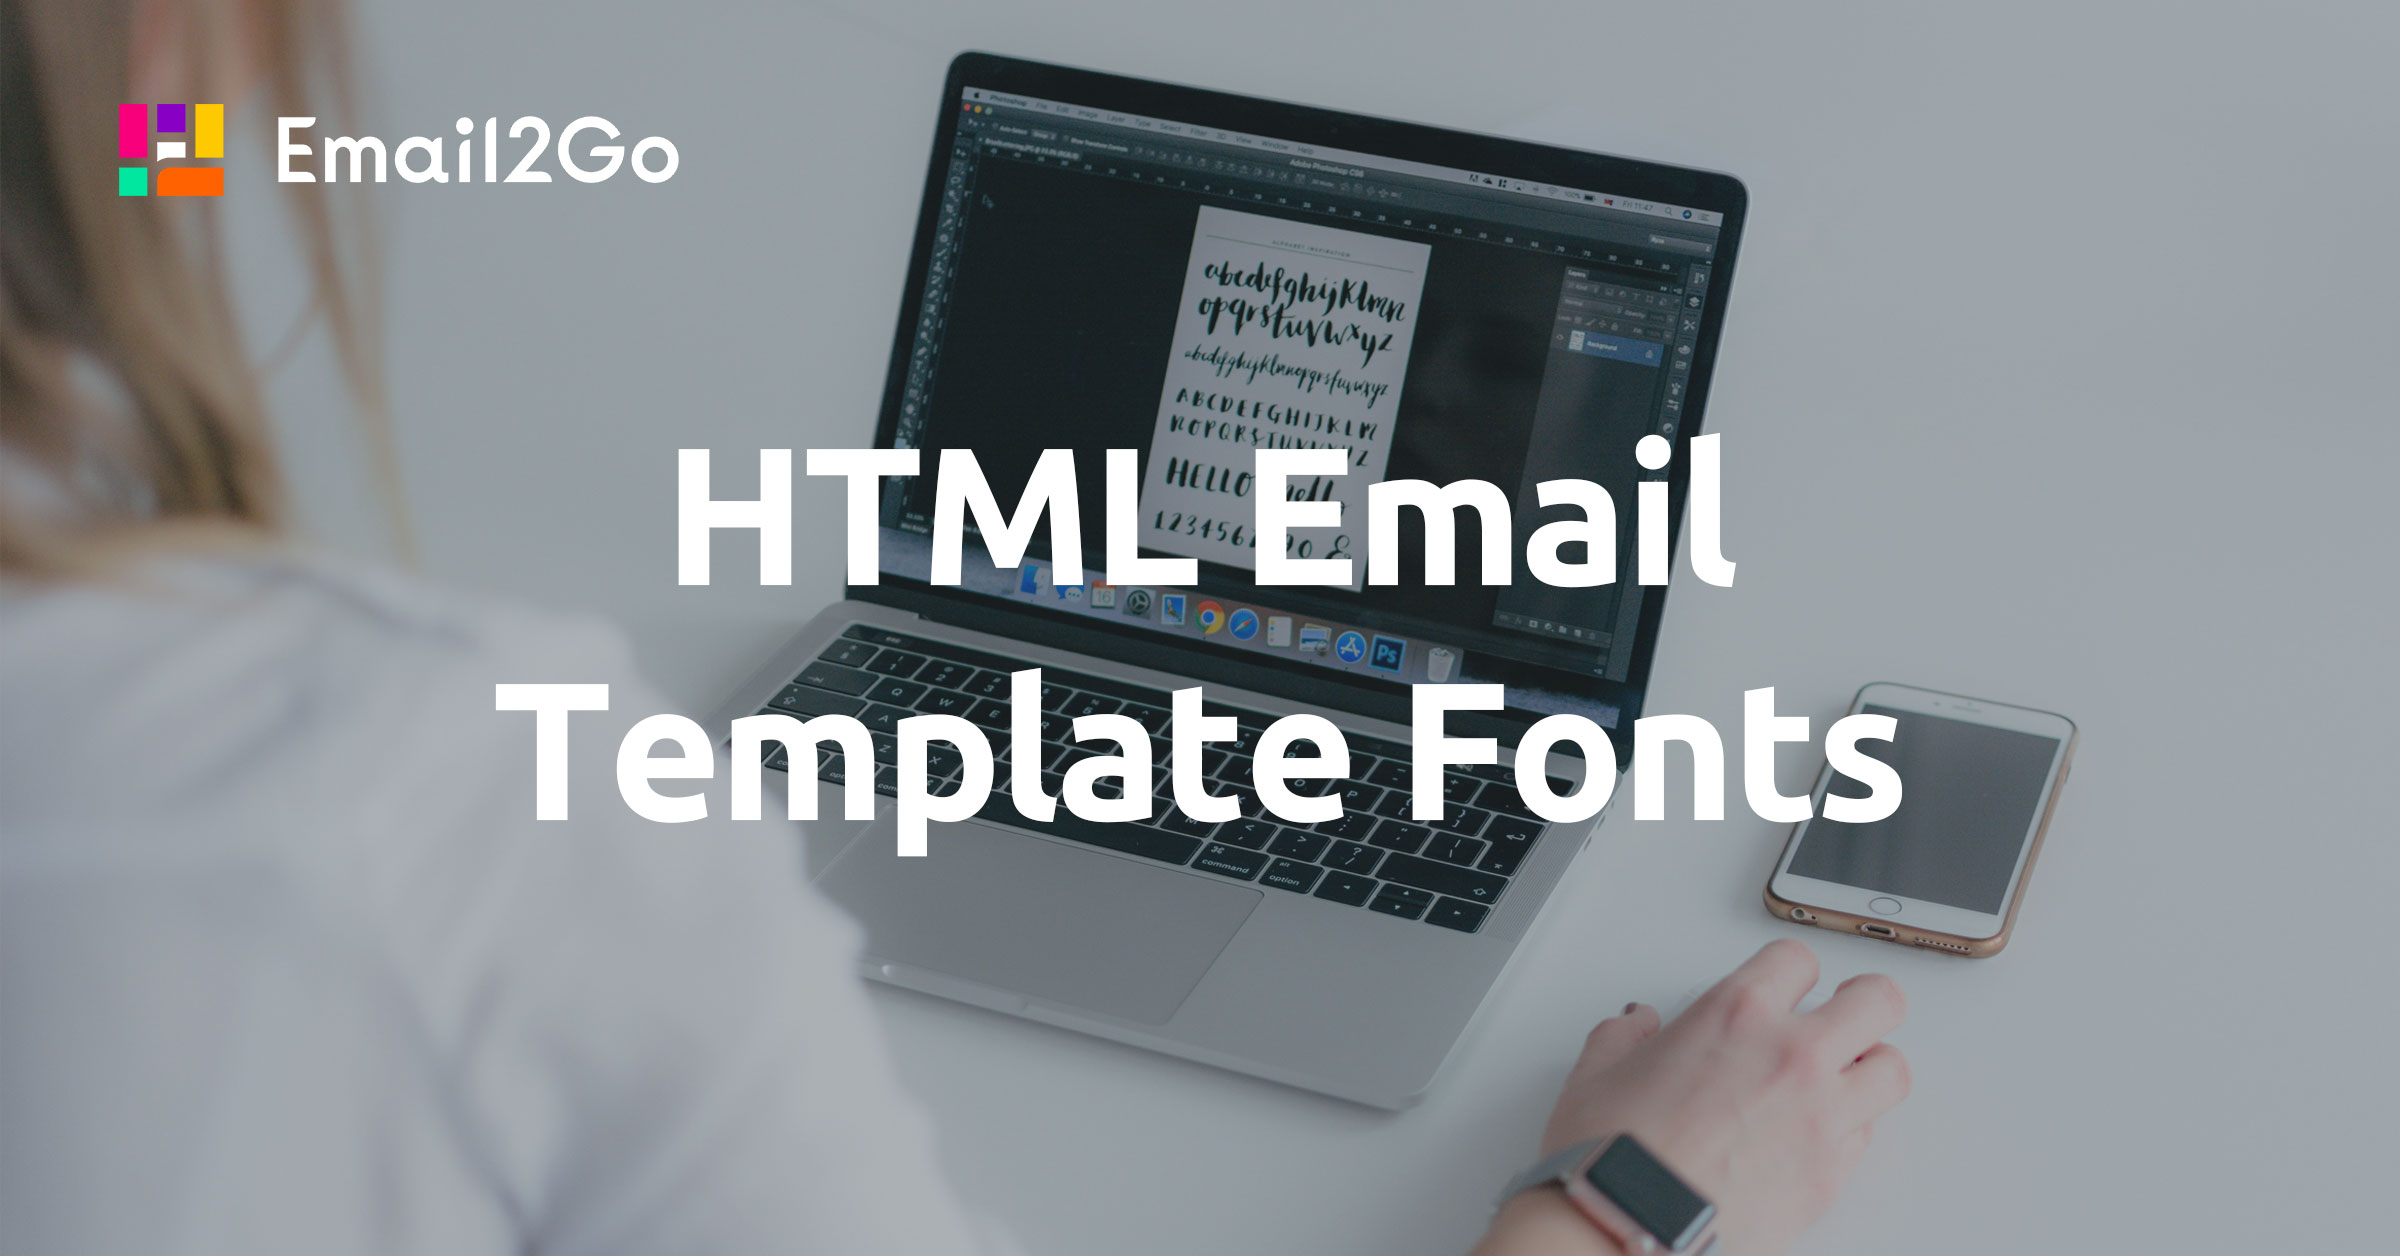 HTML Email Template Fonts